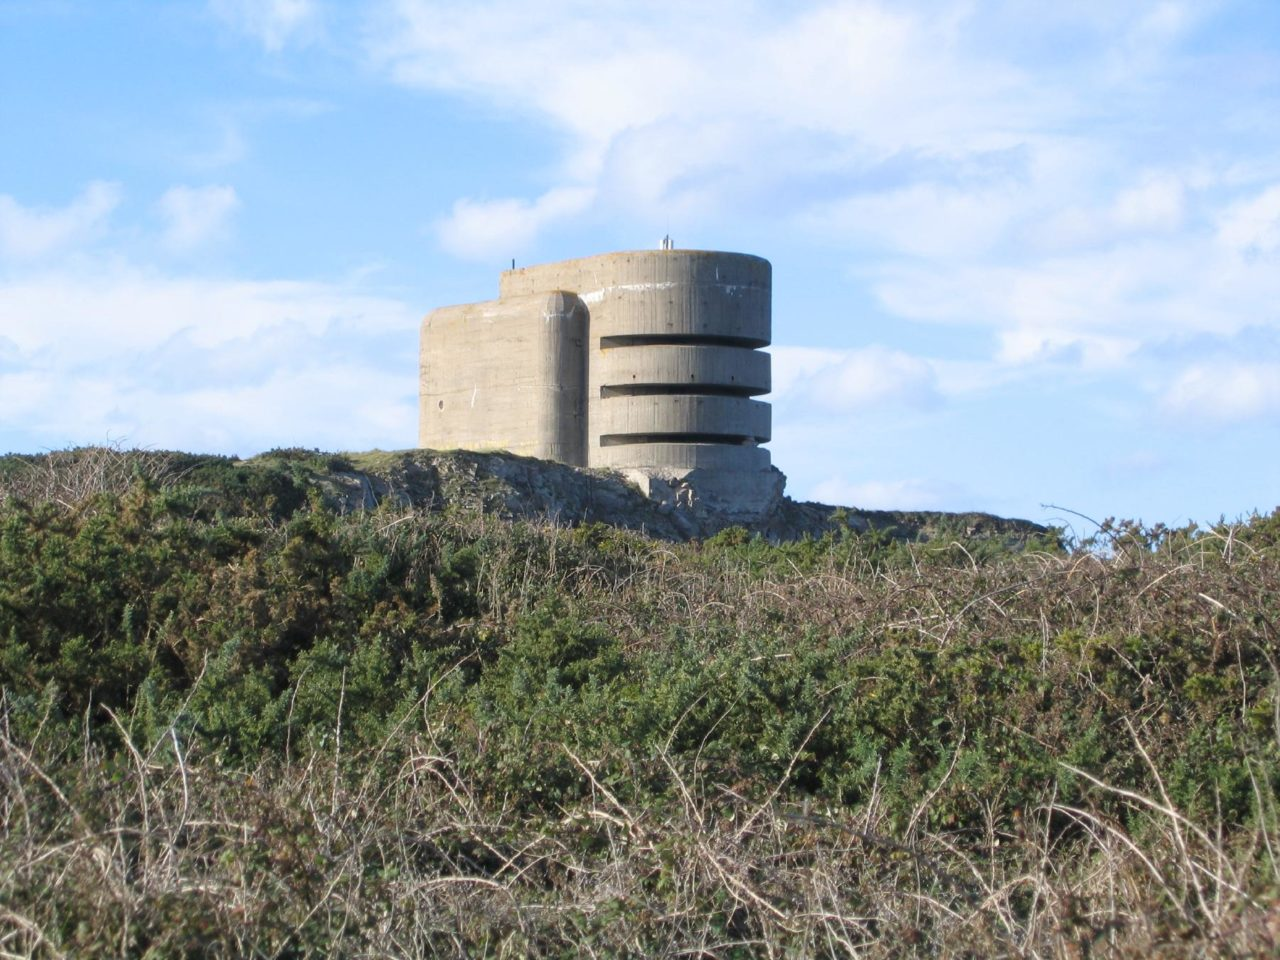 https://thesubmarine.it/wp-content/uploads/2017/01/Alderney_WW2_occupation_bunker_Odeon-1280x960.jpg